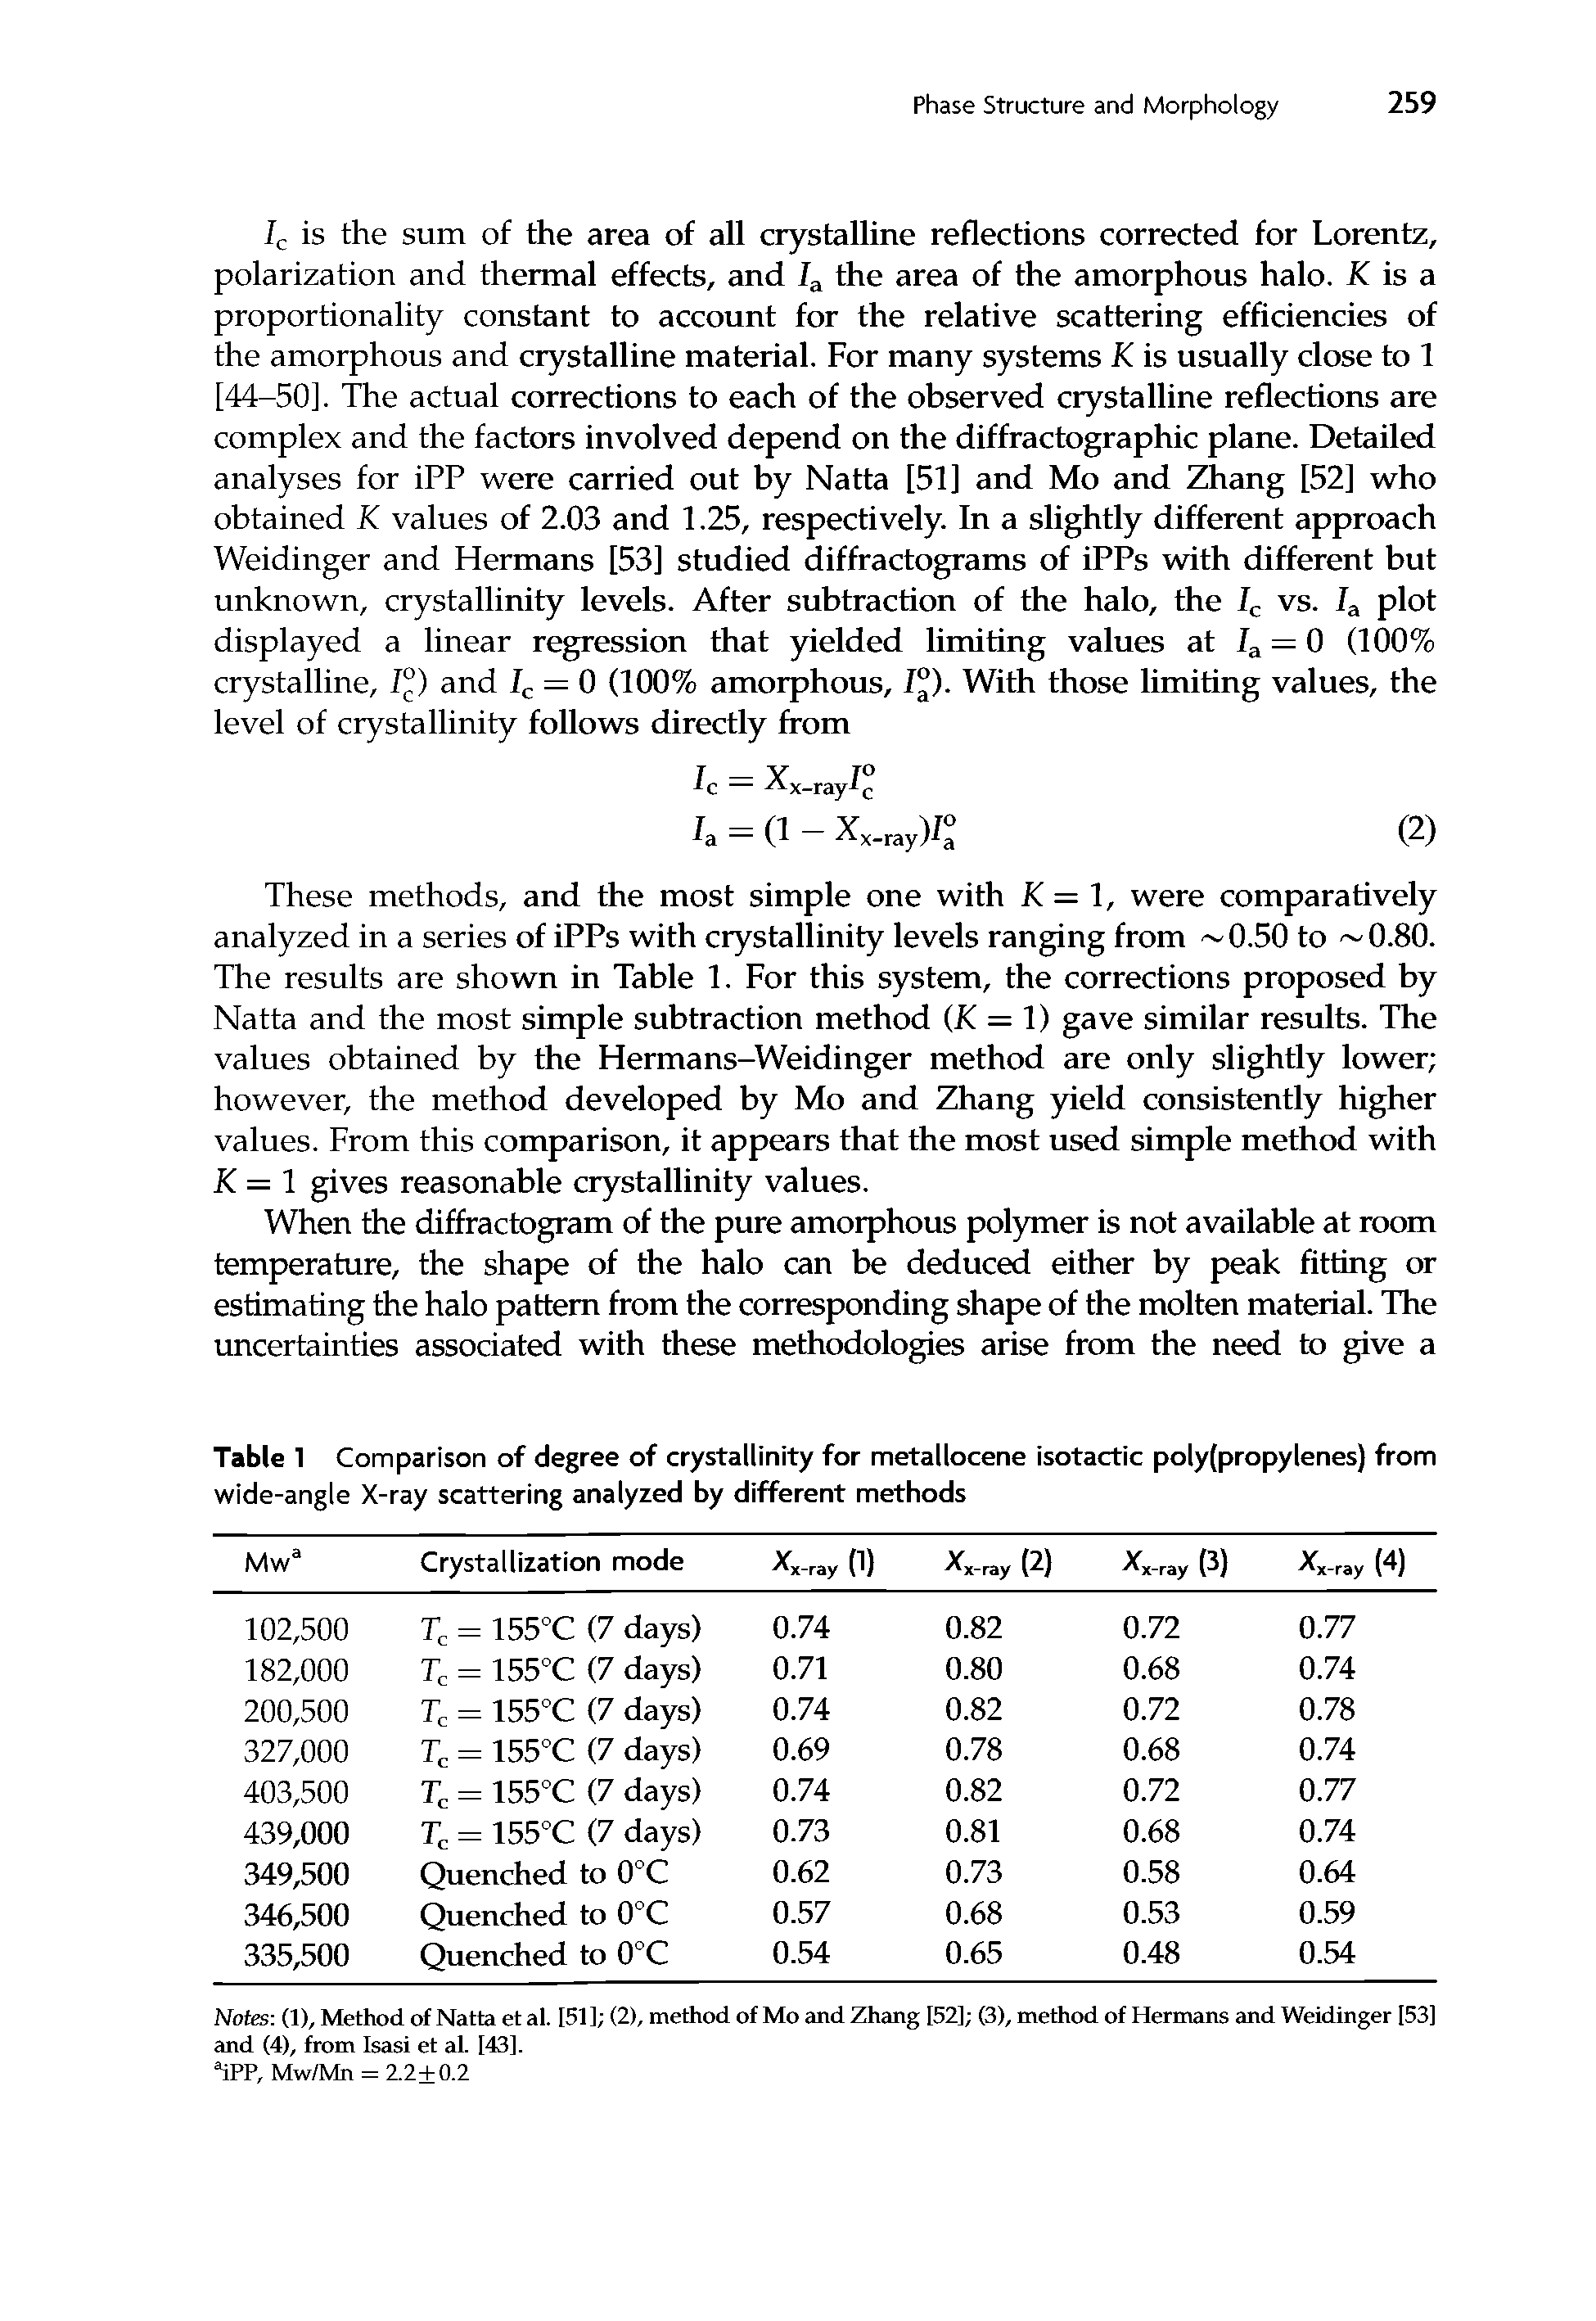 "Table 1 Comparison of degree of crystallinity for <a href=""/info/metallocene_isotactic_poly_propylenes"">metallocene isotactic poly(propylenes</a>) from <a href=""/info/wide_angle_x_ray"">wide-angle</a> X-ray scattering analyzed by different methods"